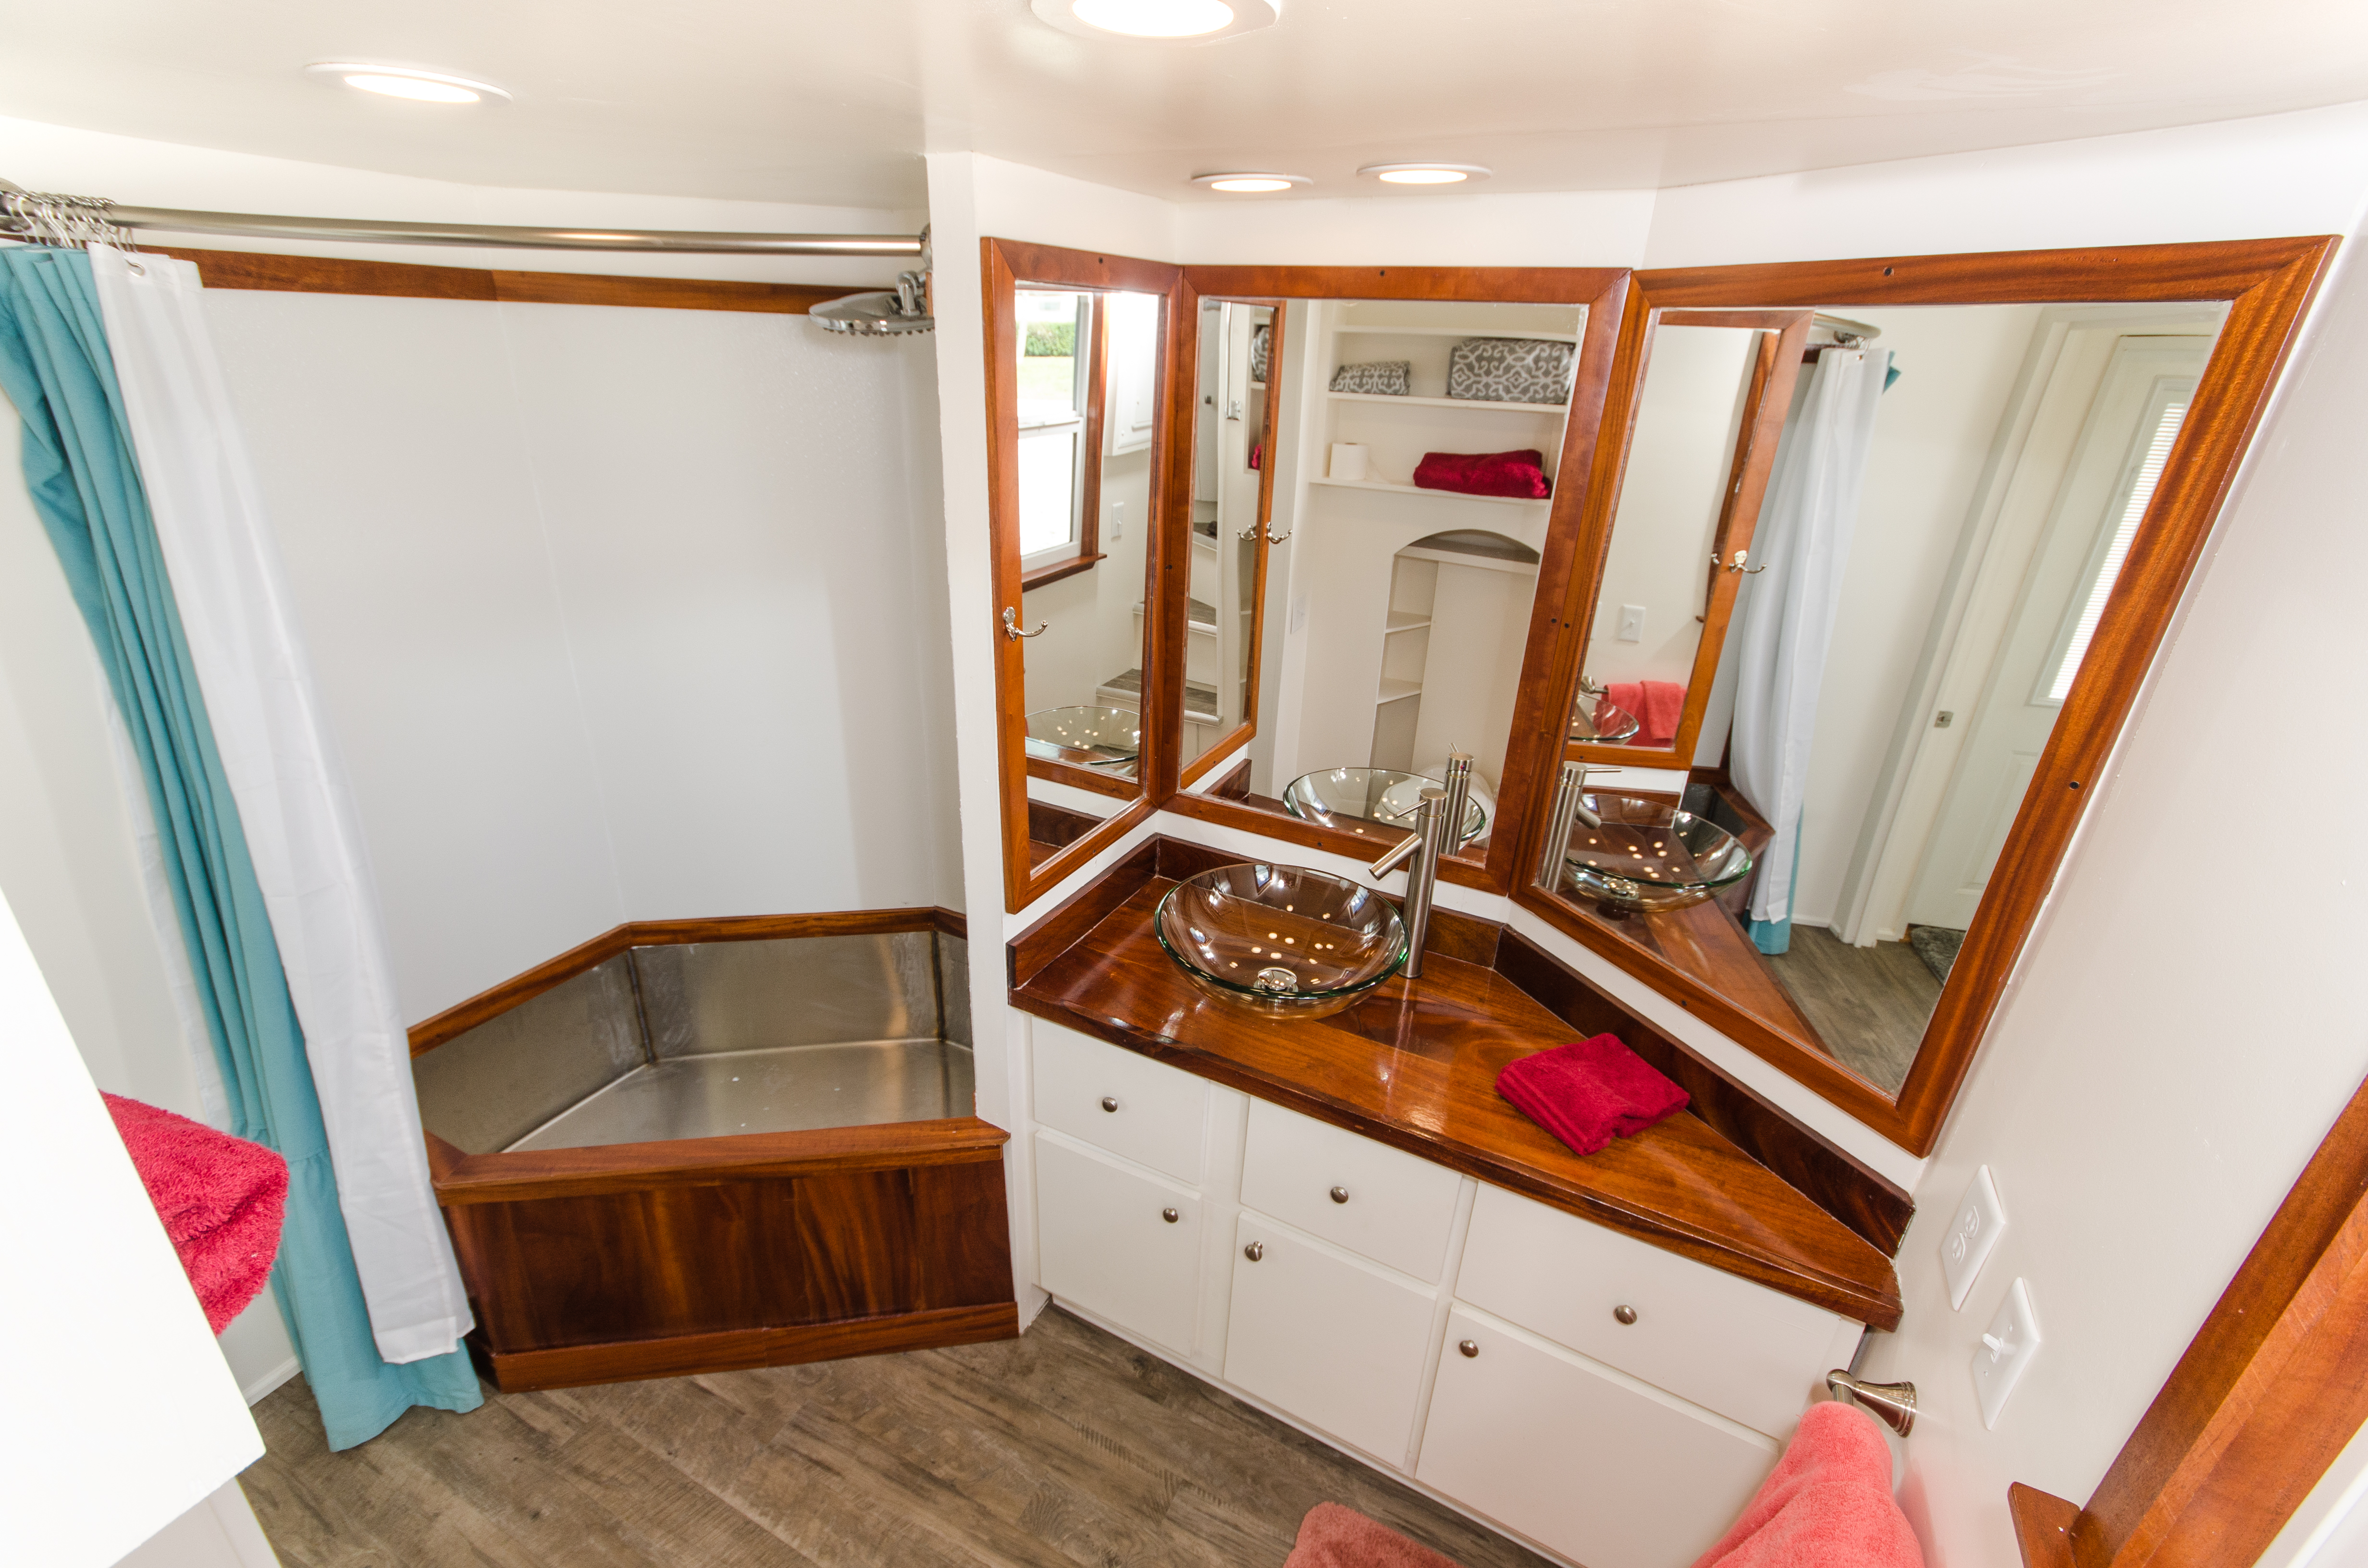 TinyHomes-interior1-bathroom-1548